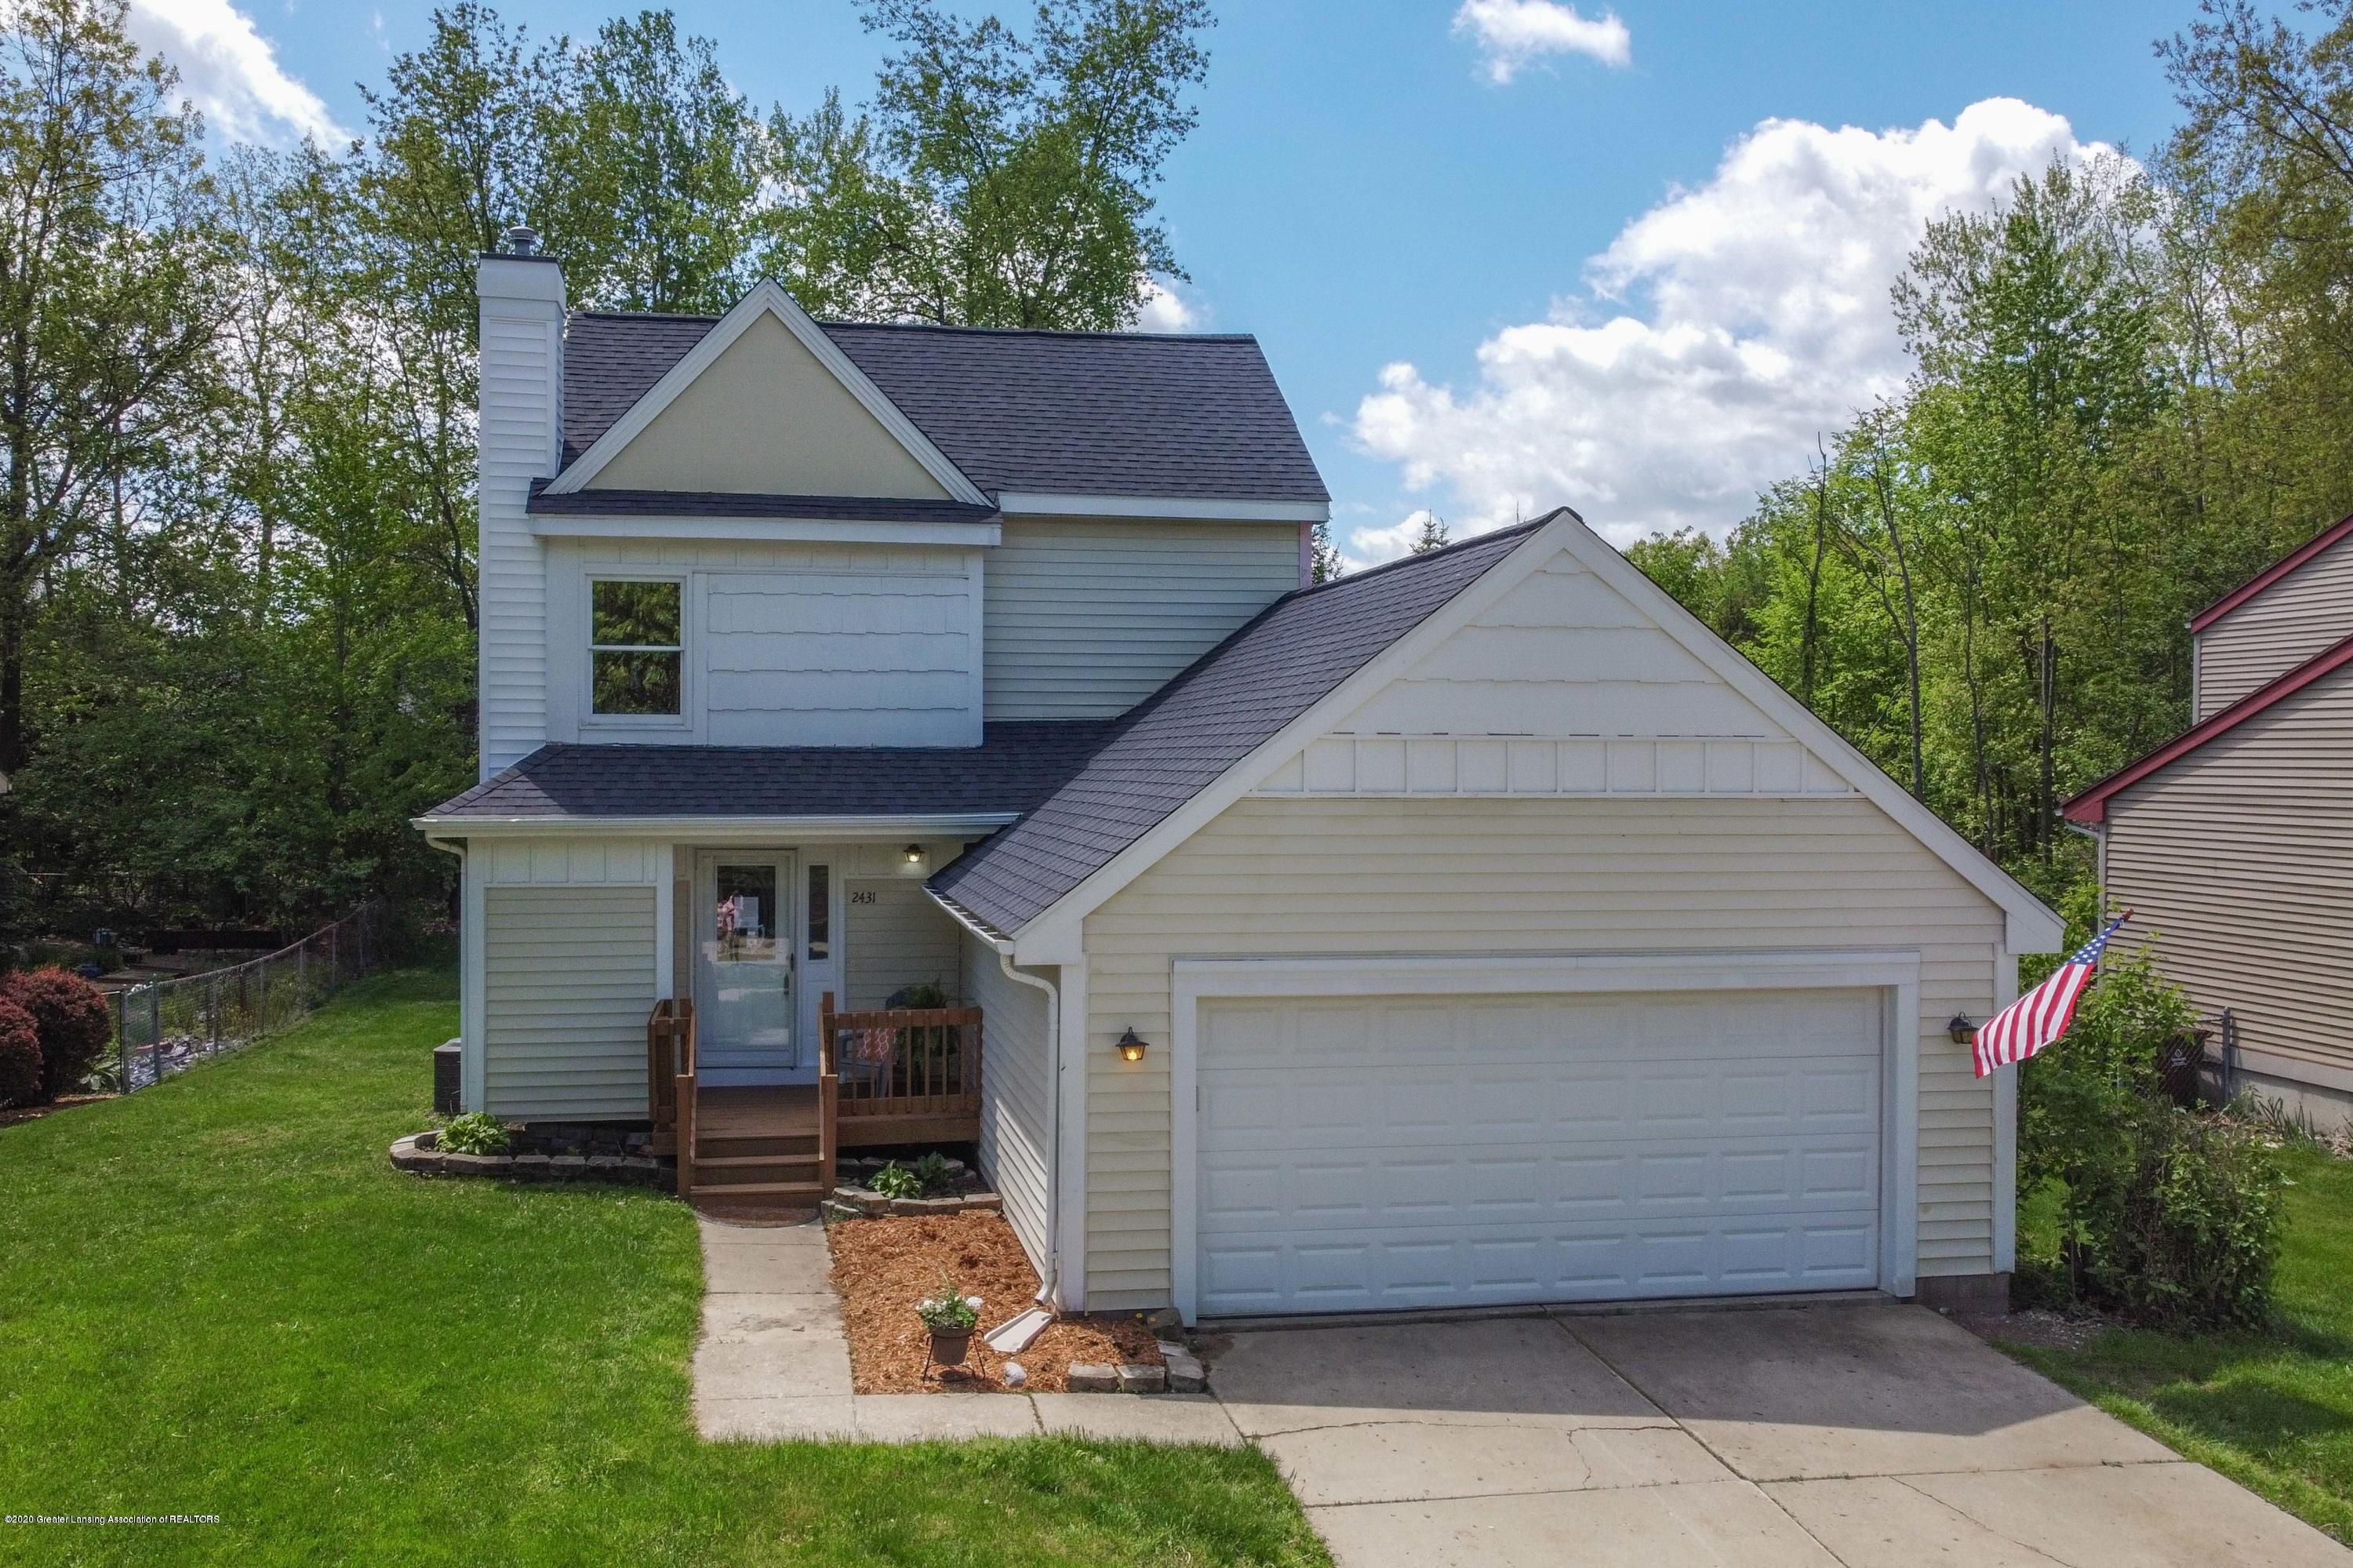 2431 Graystone Dr - Front - 1